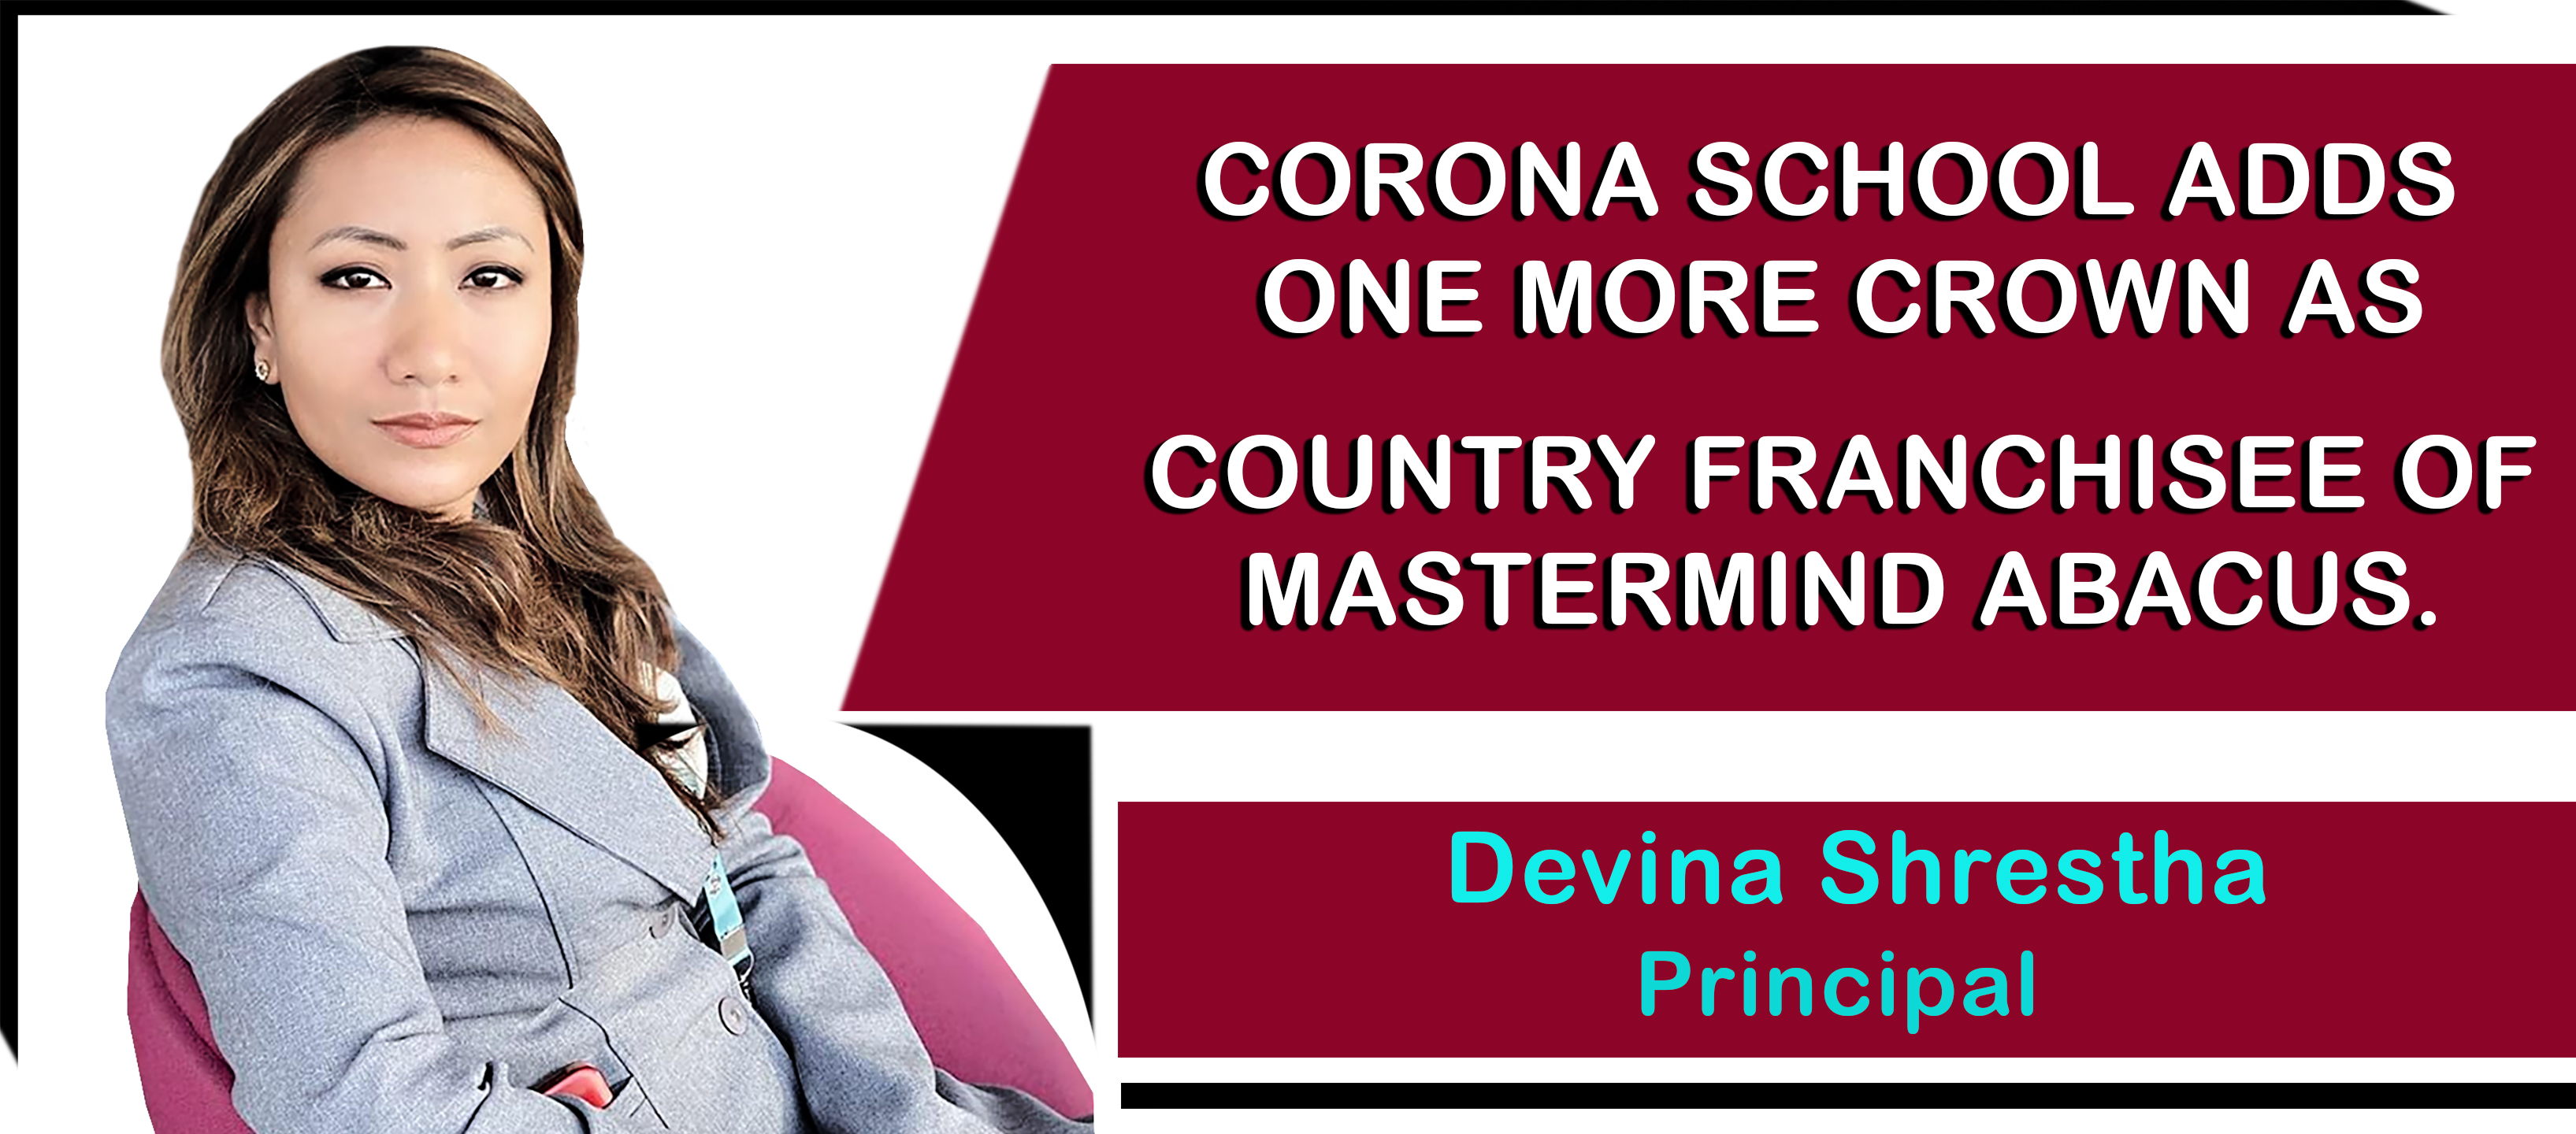 CORONA SCHOOL ADDS ONE MORE CROWN AS COUNTRY FRANCHISEE OF MASTERMIND ABACUS.